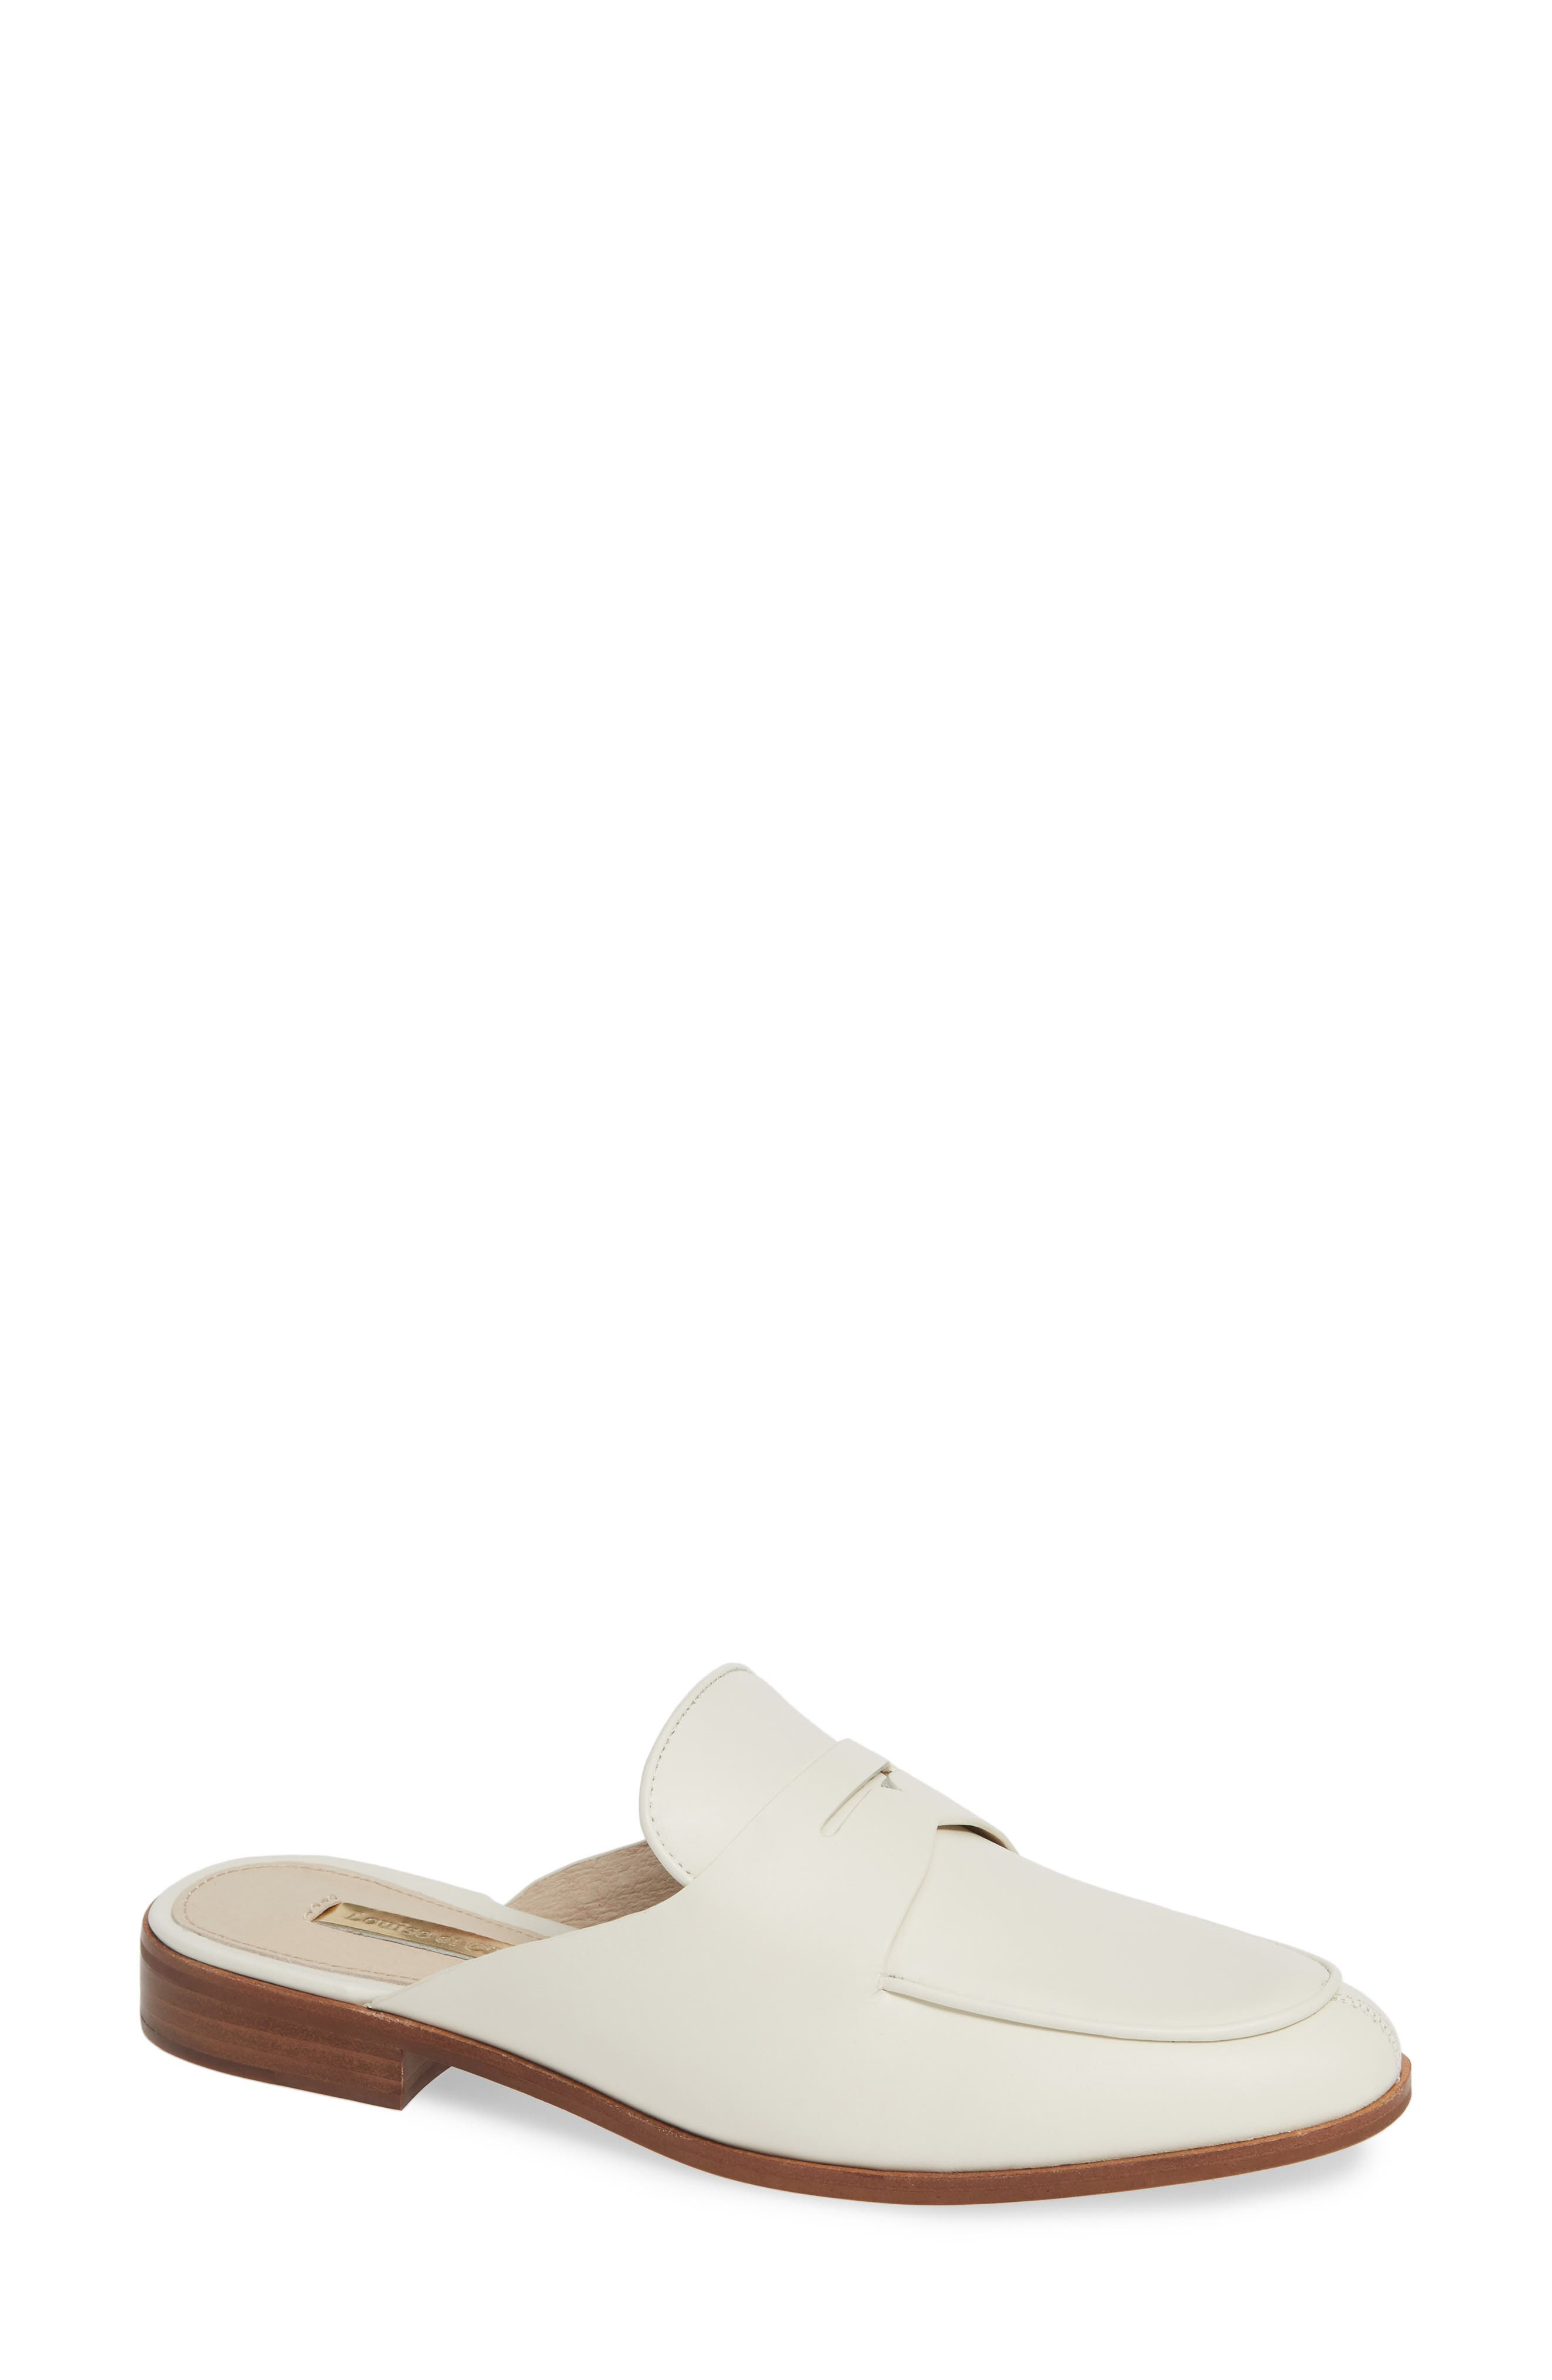 Louise Et Cie Dugan Flat Loafer Mule- White